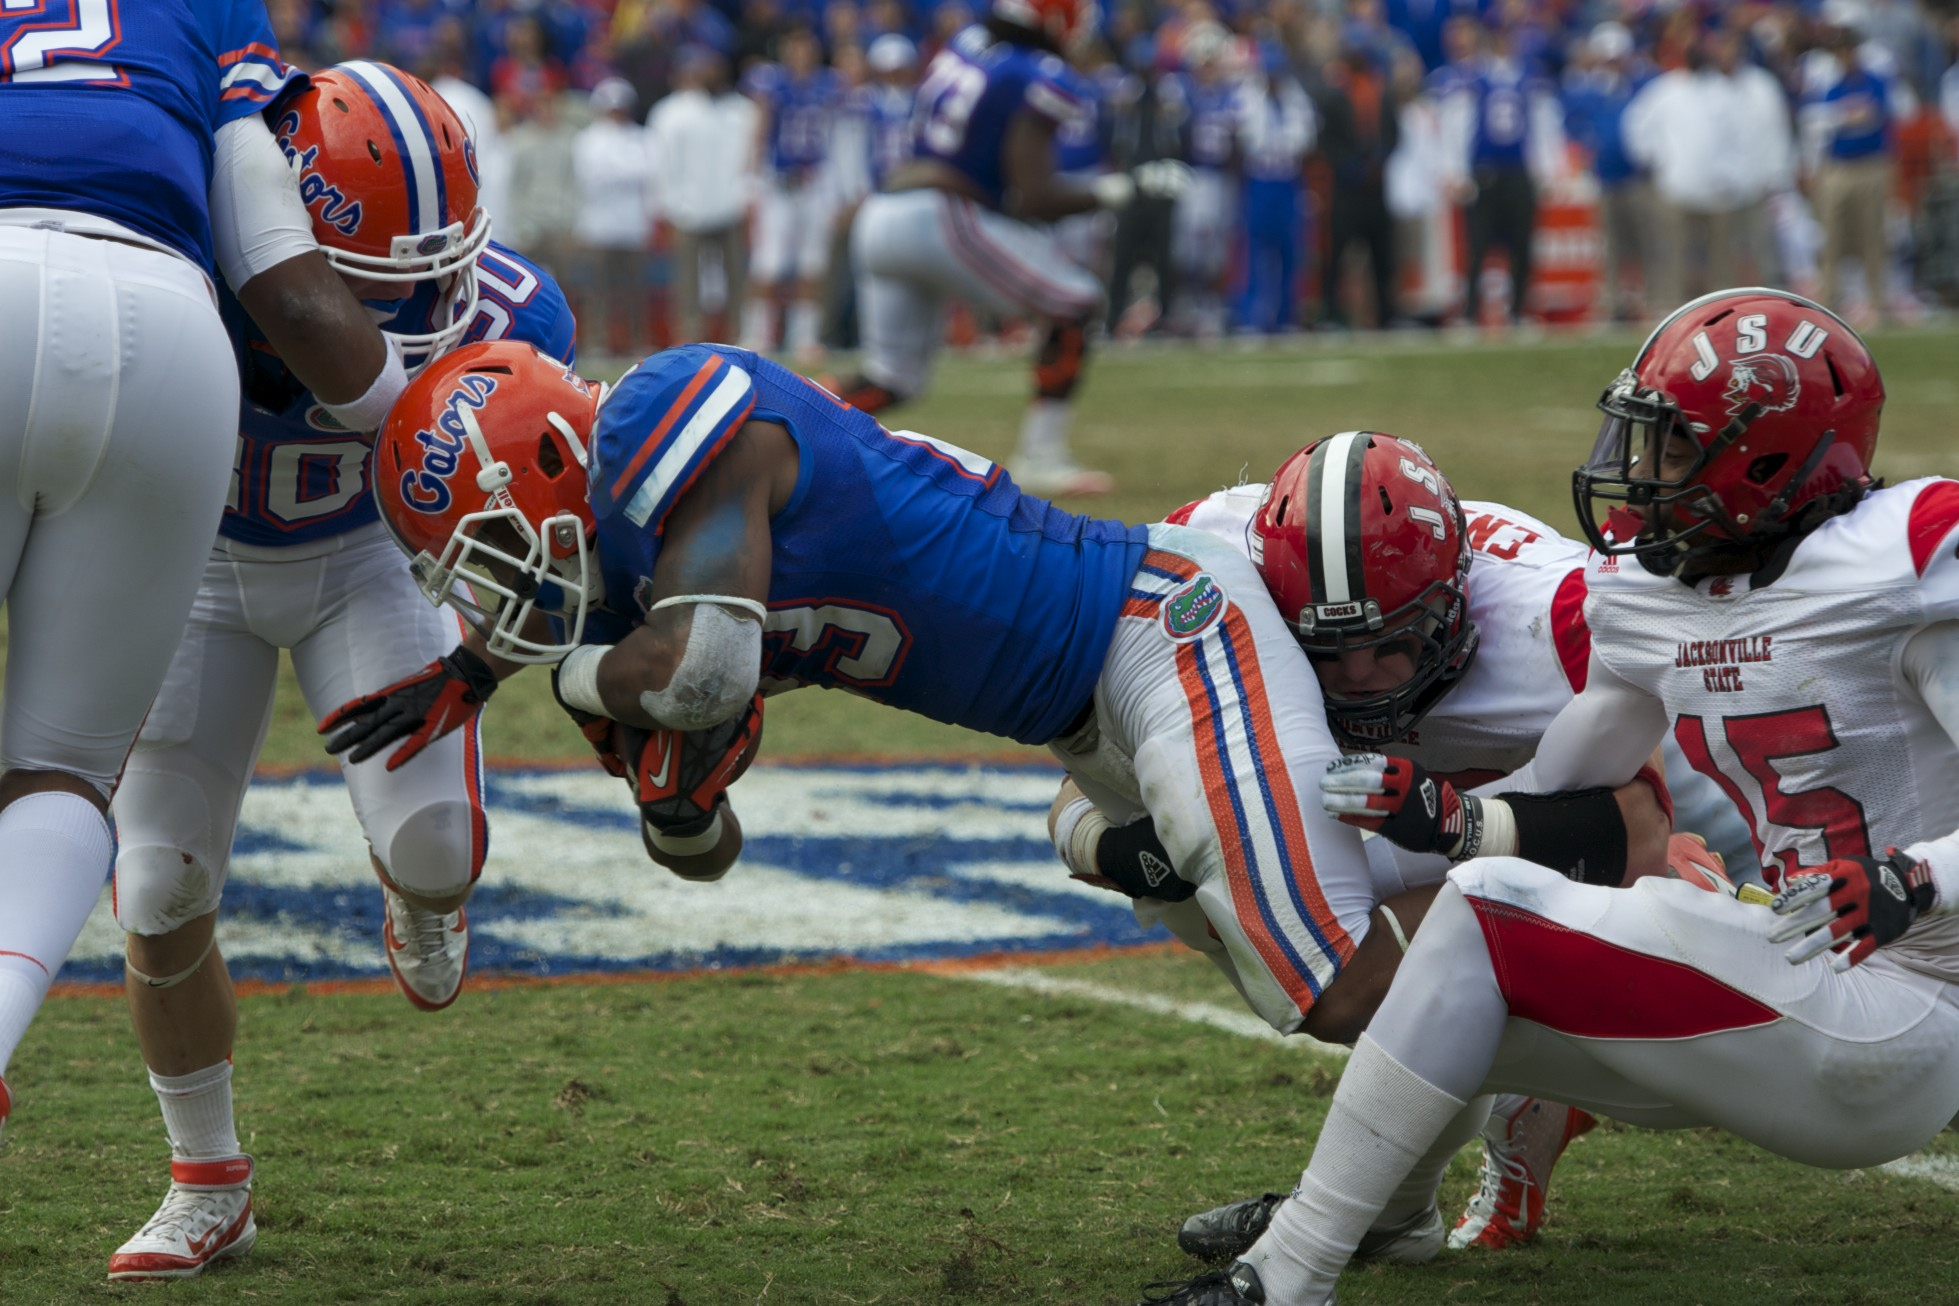 Mike Gillislee (23) is taken down by Jacksonville State defense in the second half of Saturday's game.